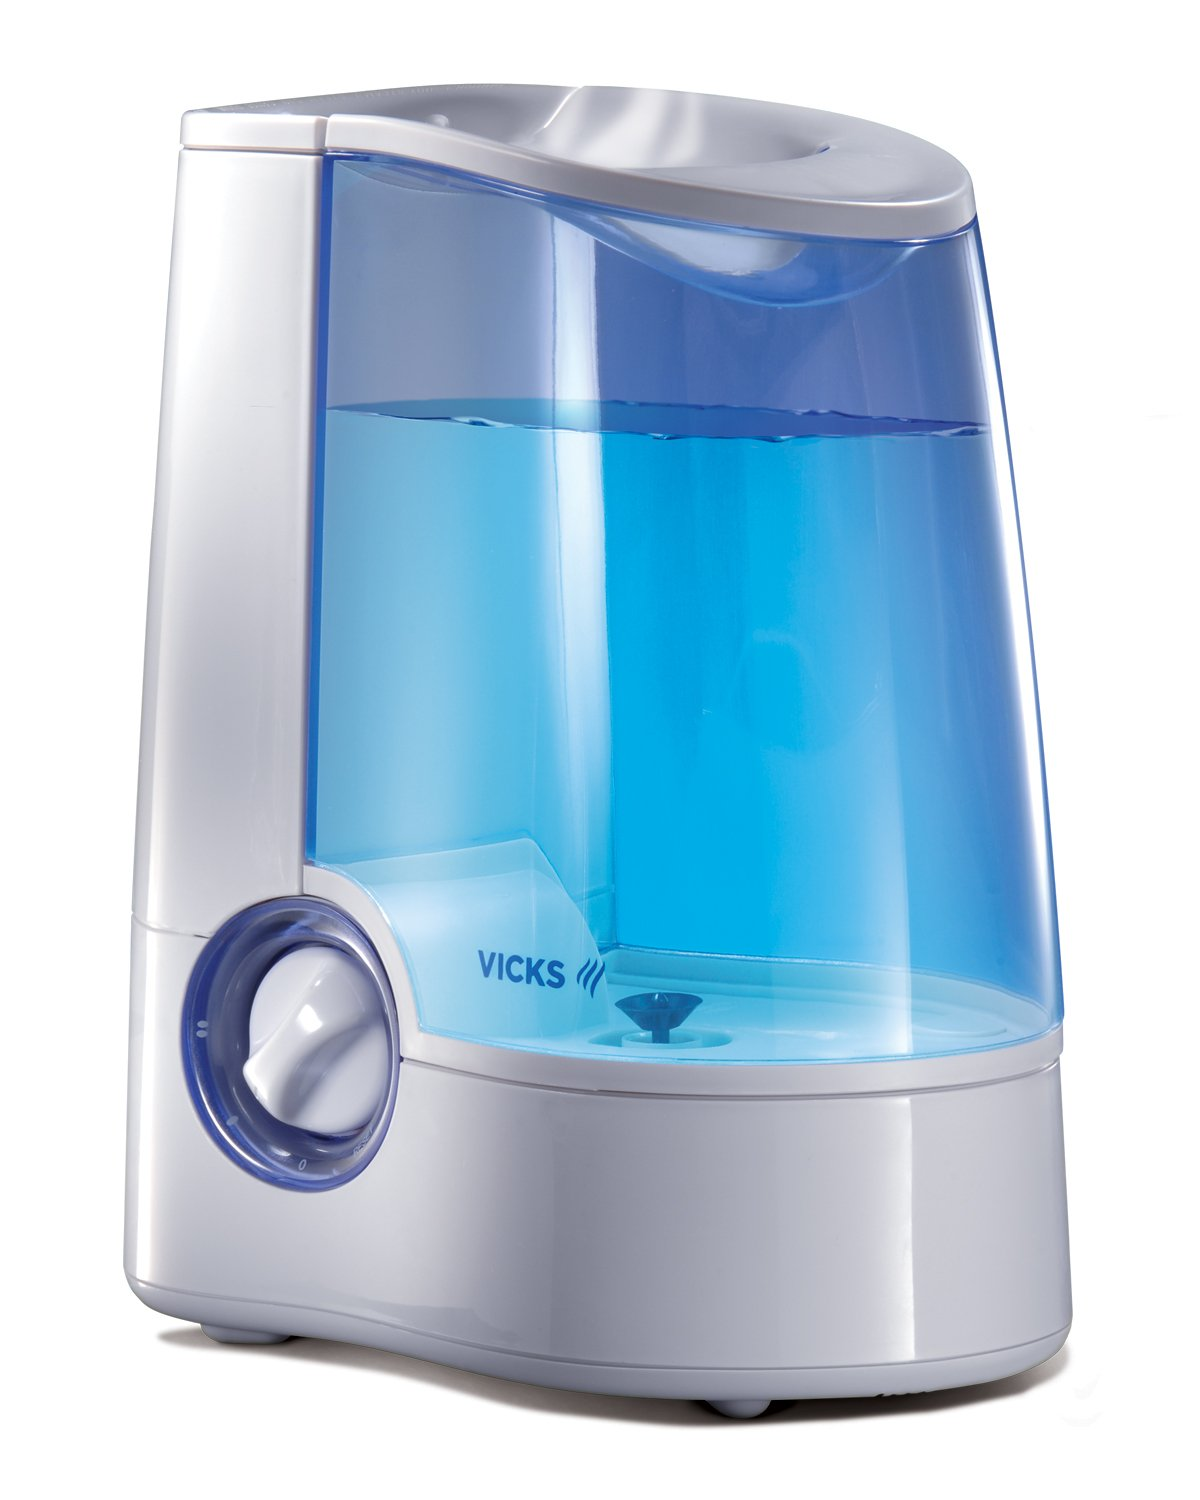 Vicks 1-Gallon Warm Mist Best Humidifier Review by www.snoremagazine.com